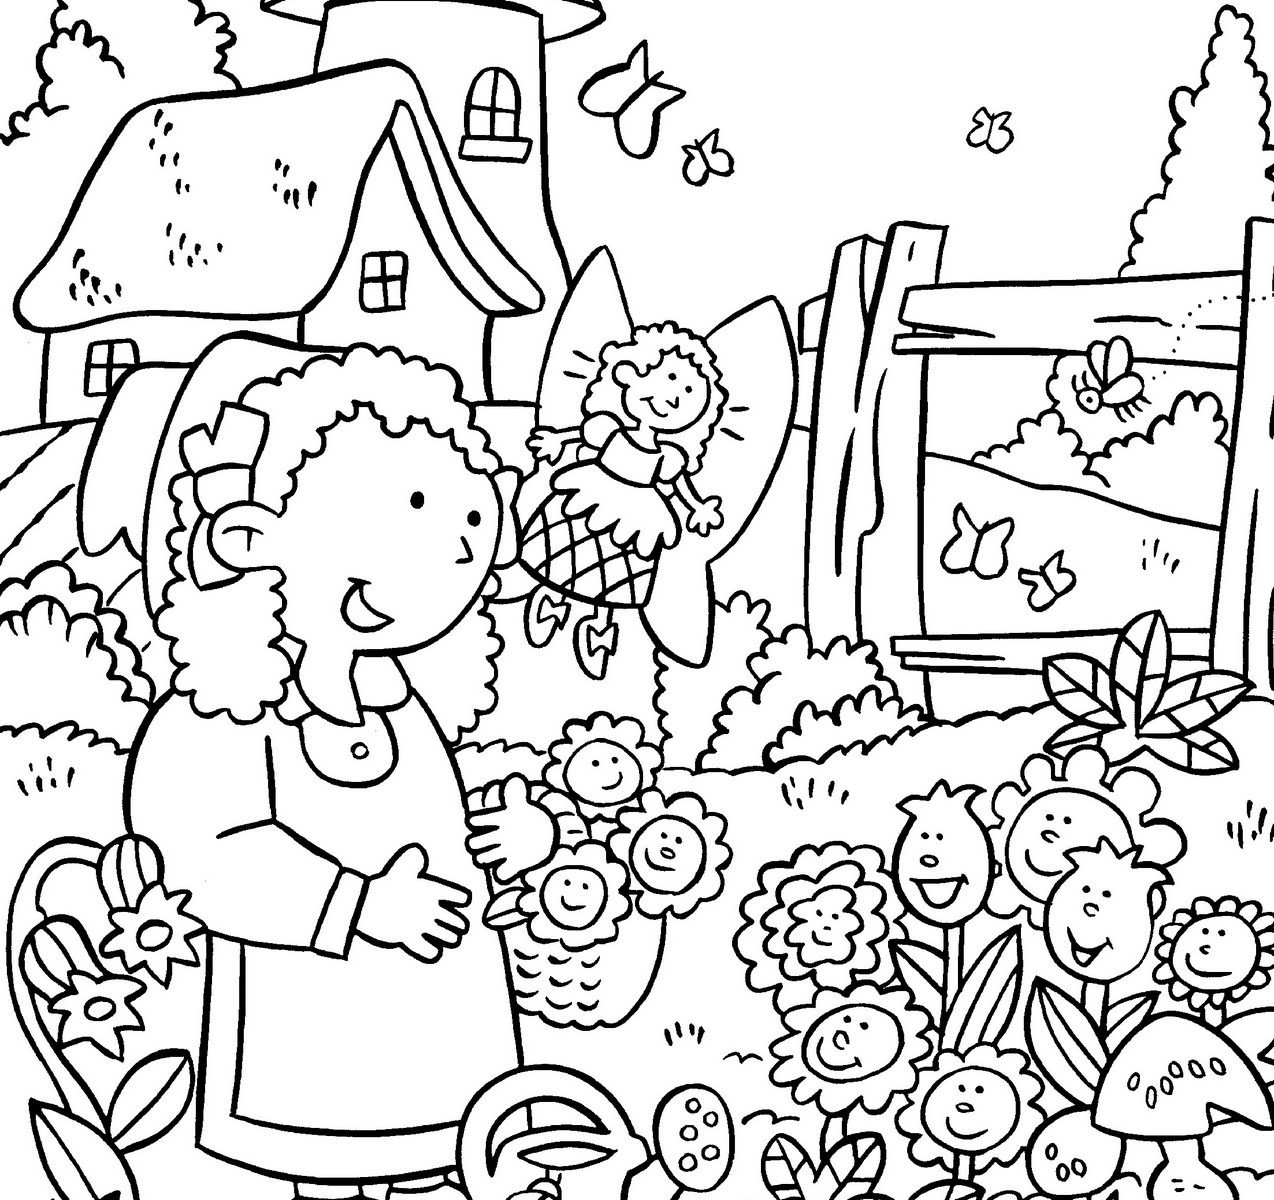 1274x1200 Girl Planting Flowers In The Garden Coloring Pages For Kids